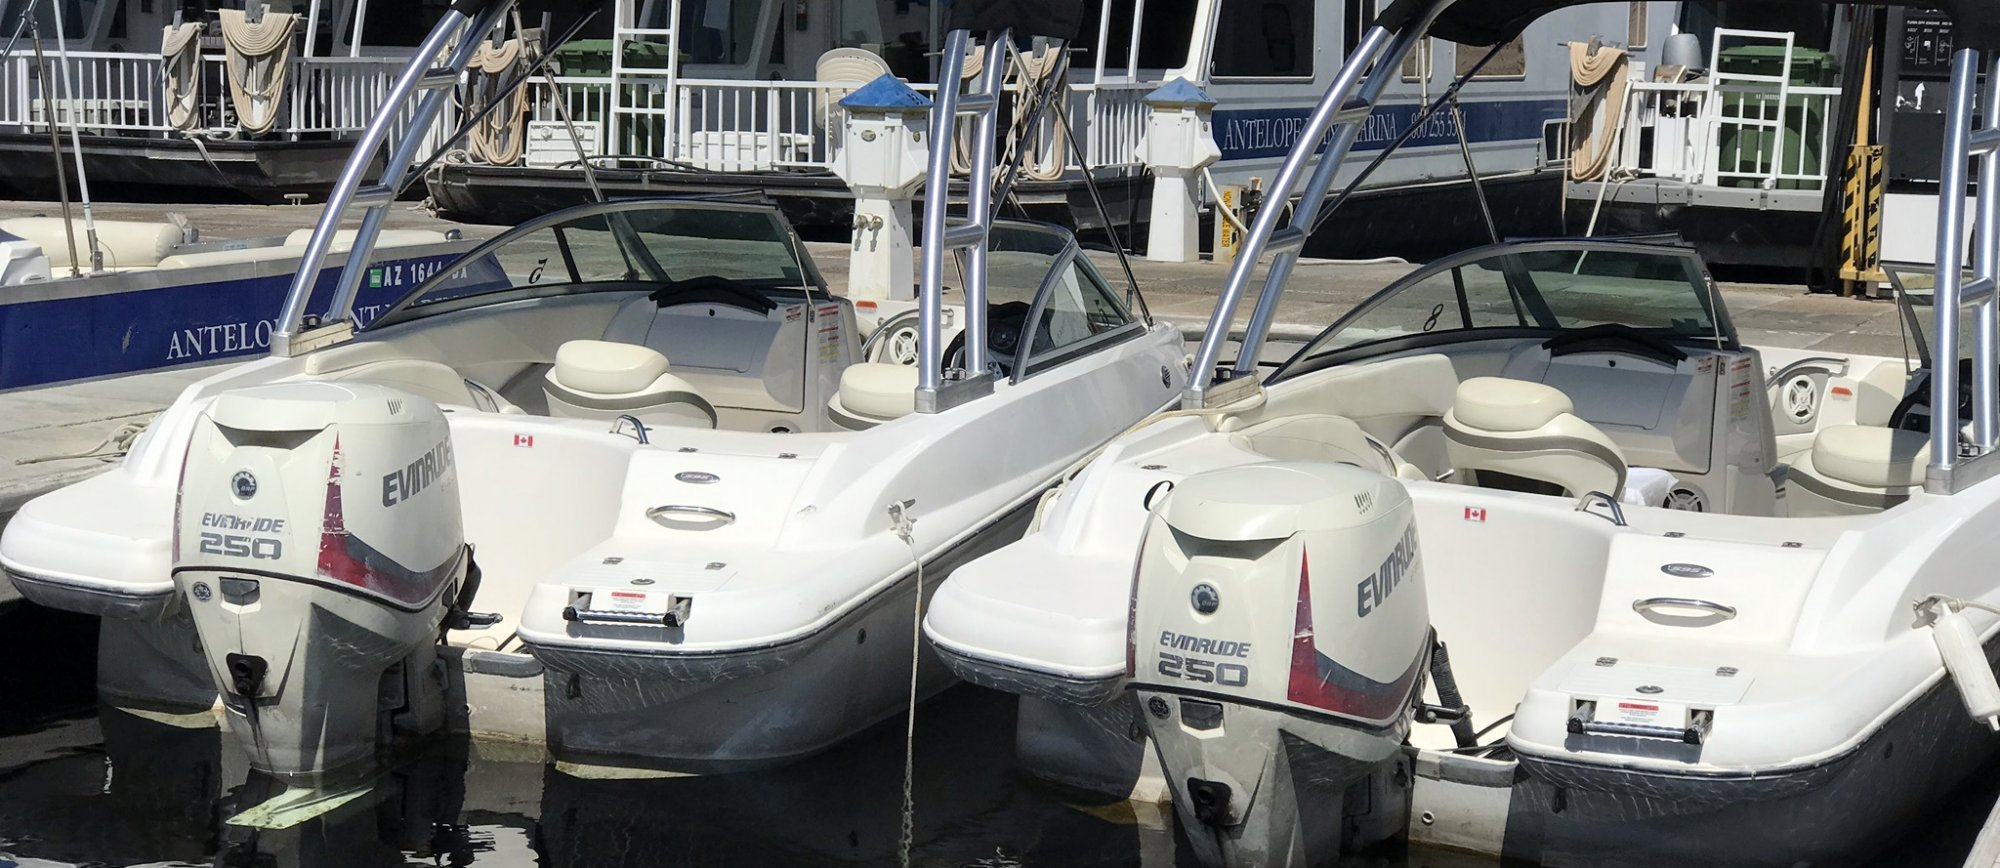 21 ft Powerboat Rental at Antelope Point Marina